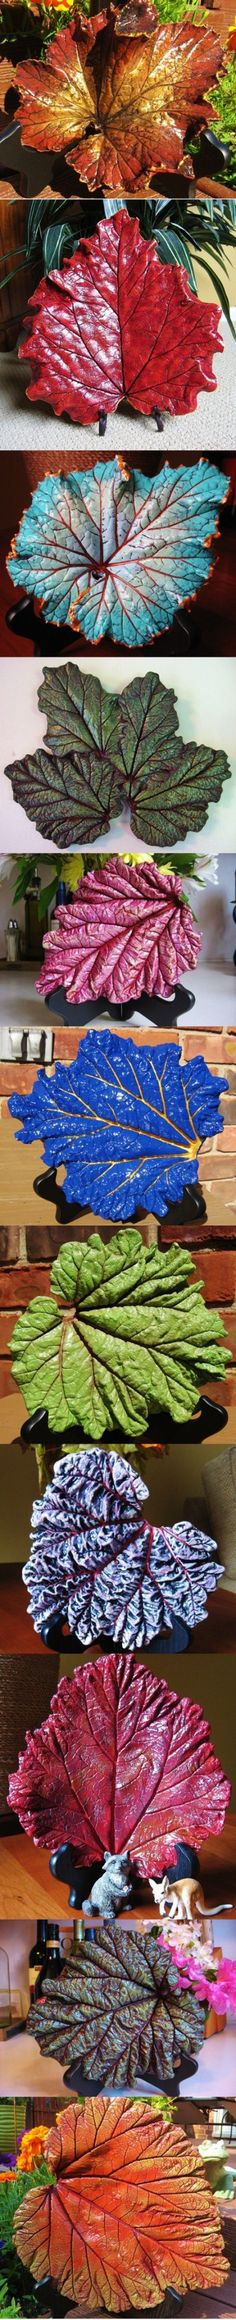 Are you interested in art? Do you like to hang your own made art pieces on the wall? If your answers are yes, then you should definitely check out these amazing looking leaf decorations for you home.You will be surprised how easy it is to do it You will be surprised how easy it is to do it when you discover the .... Read More